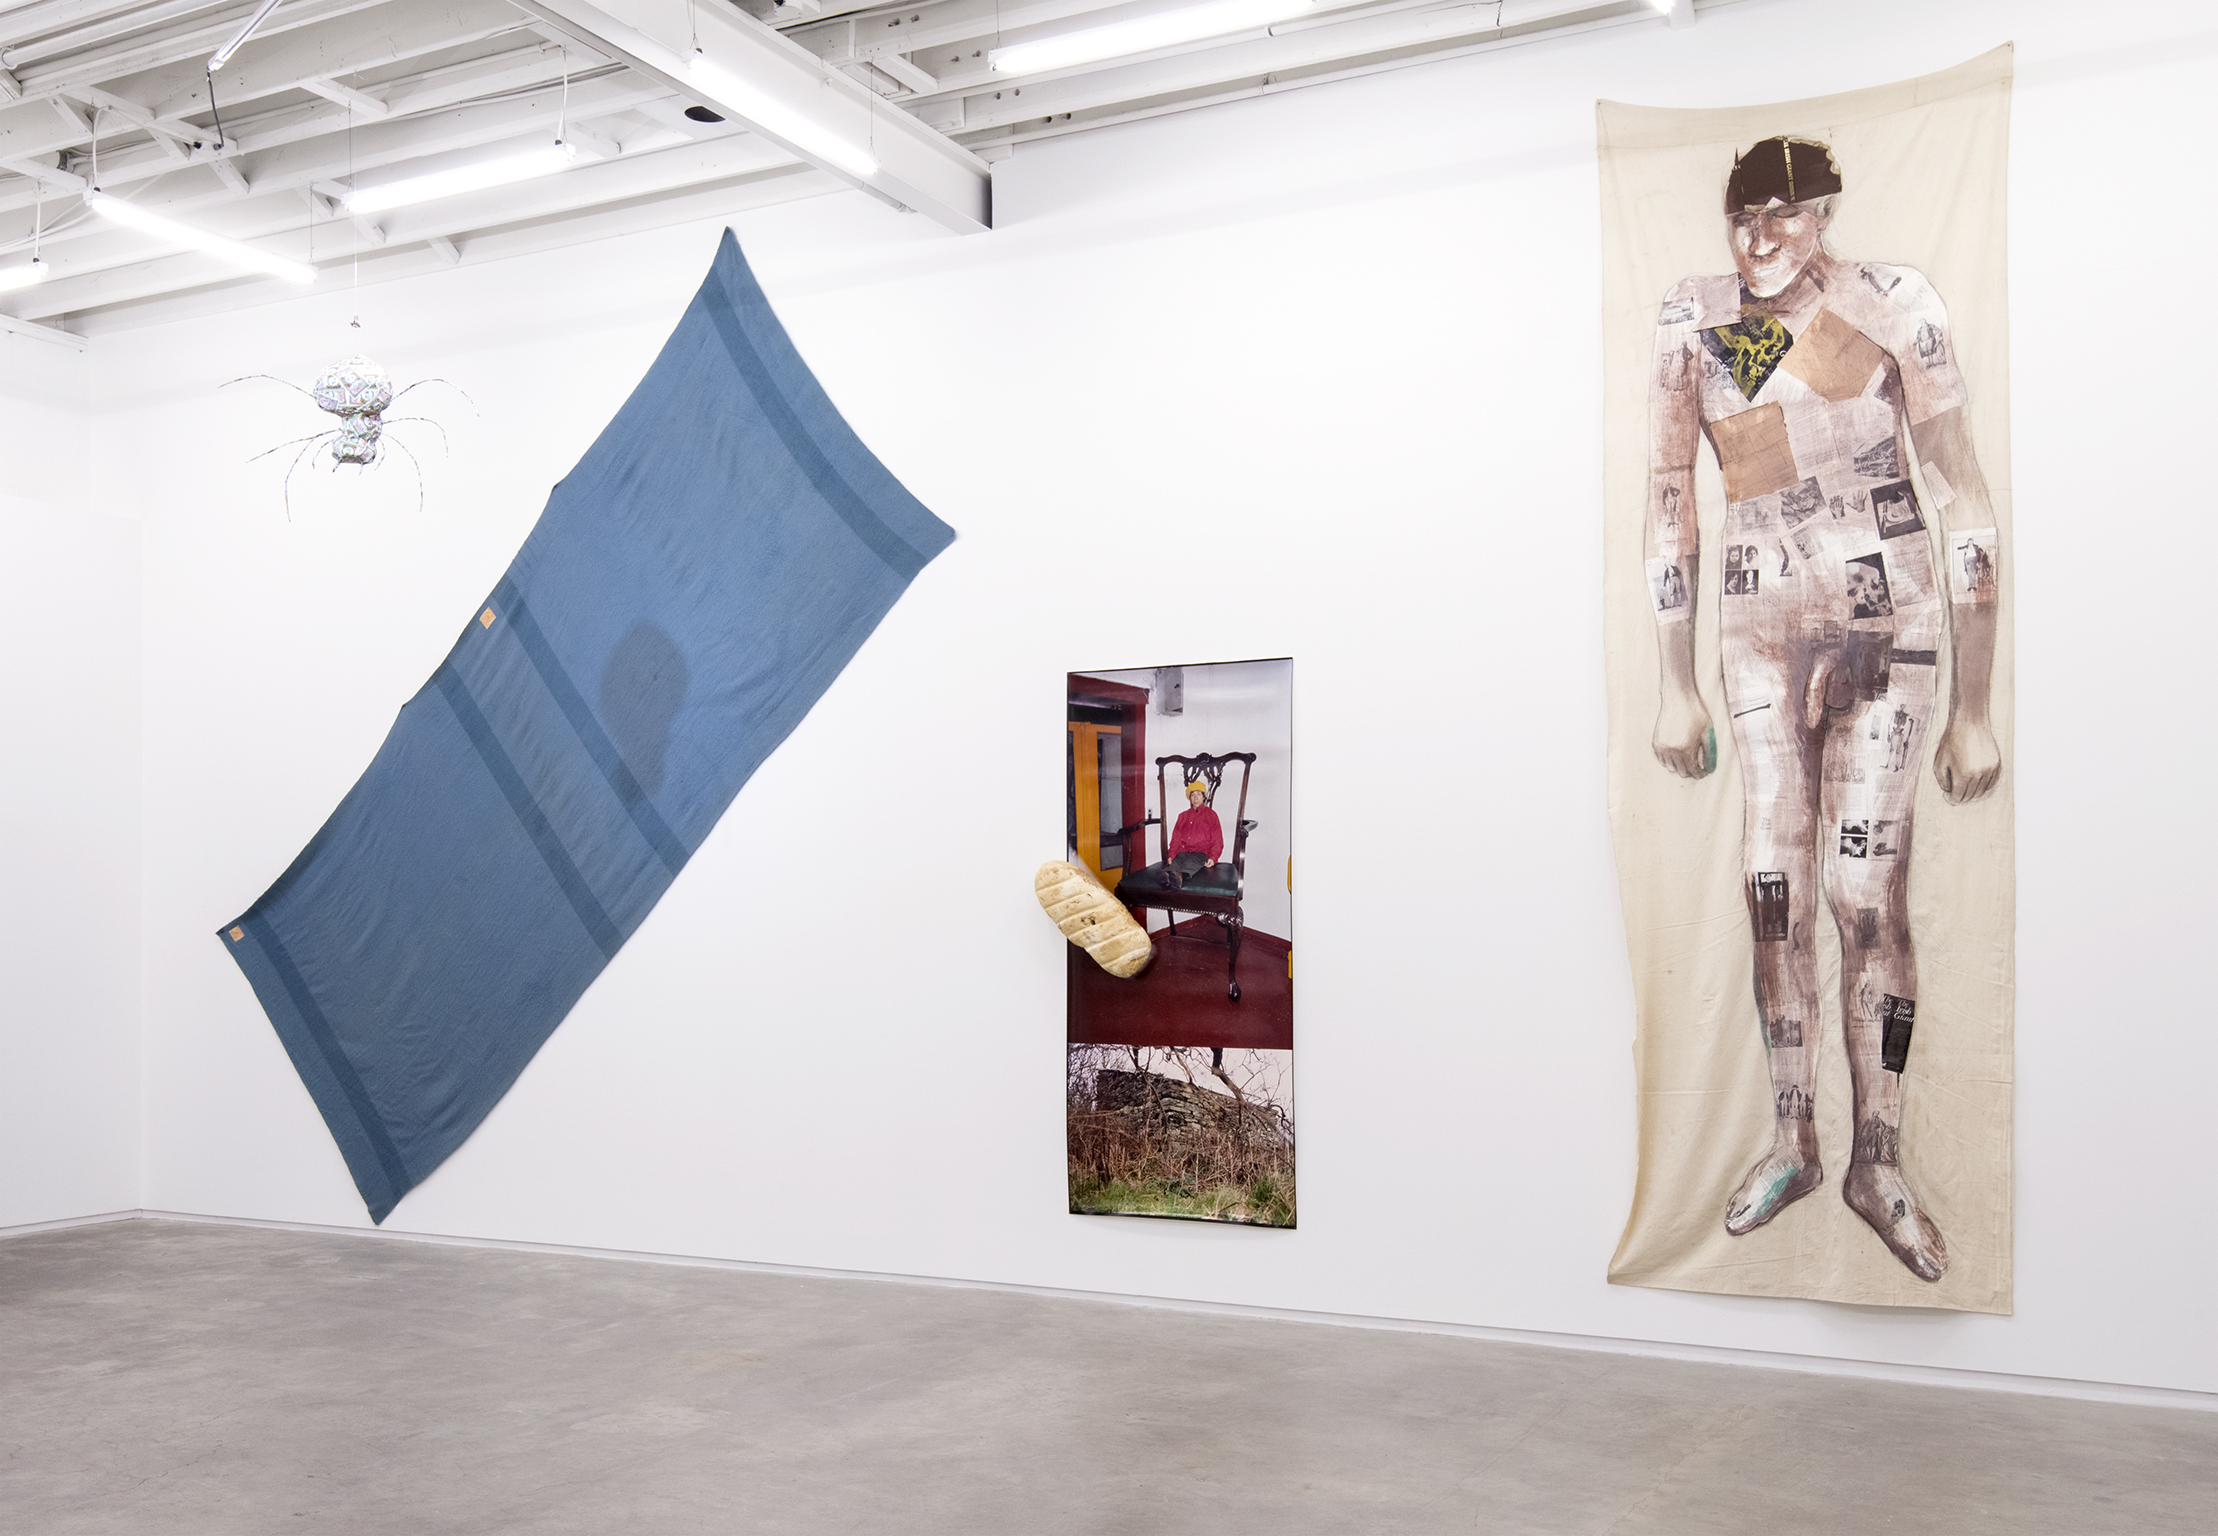 Jerry Pethick, Bigger than a book, Wilder than a Tree, 1994–1997, found book Irish Giant, paint, graphite on linen, styrofoam, cibachrome photograph, wool blanket, spotlight, papier-mâché, metal spider, dimensions variable by